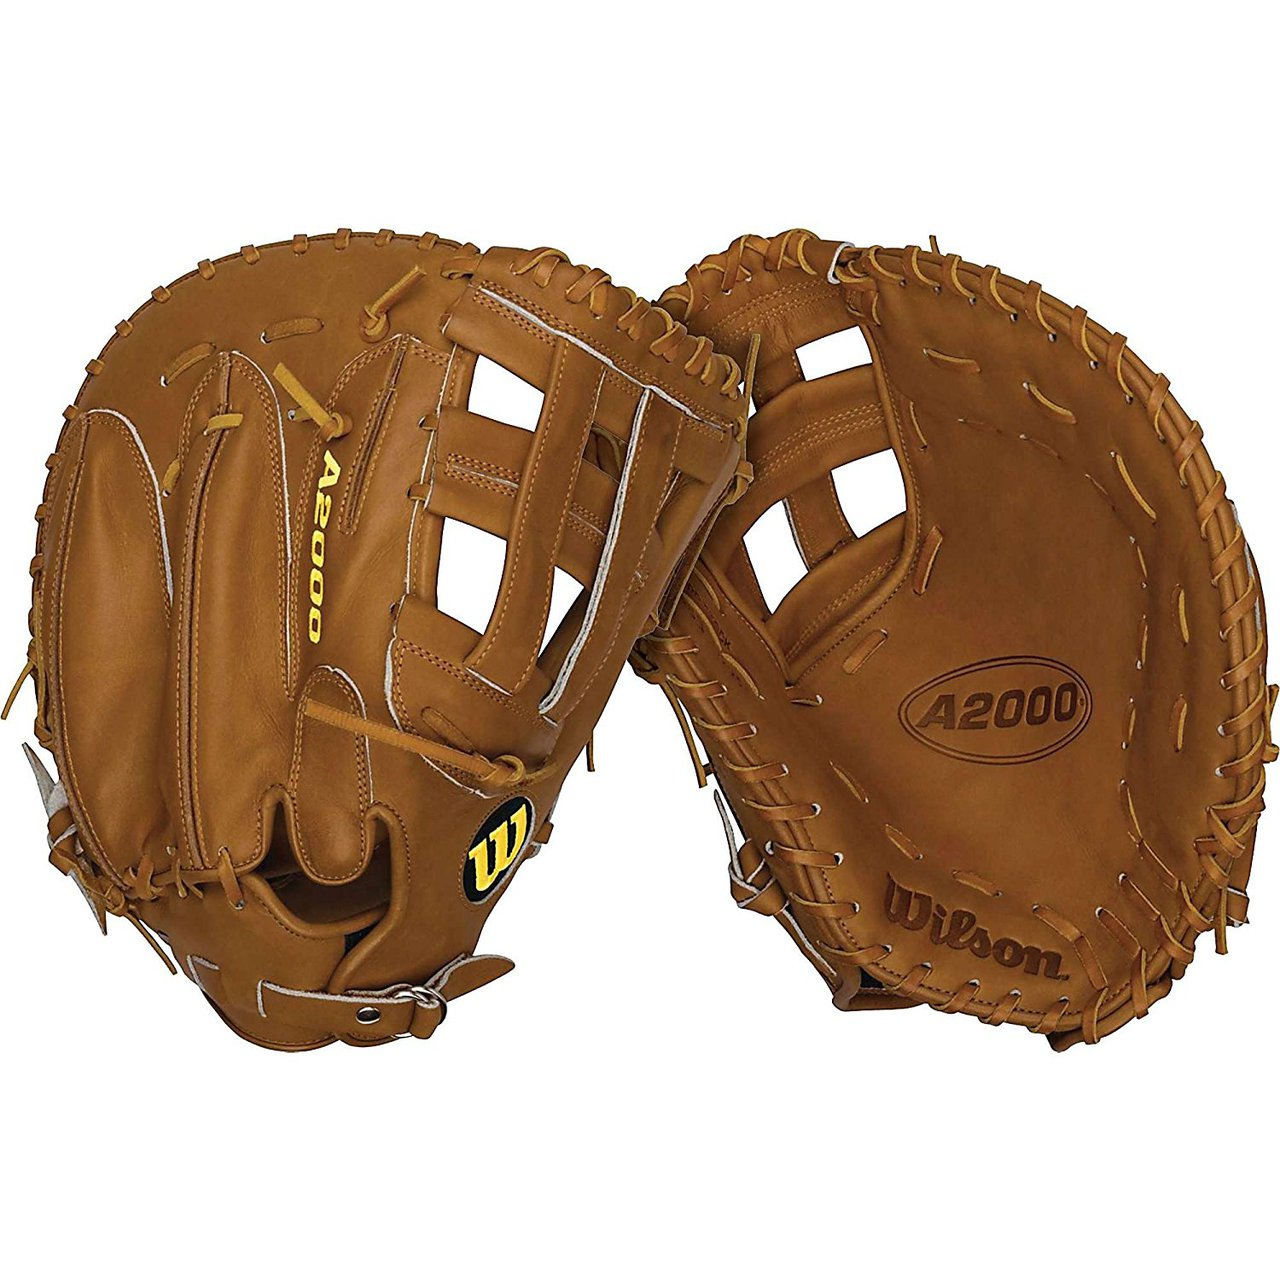 Since its introduction in 1957 the Wilson A2000 Series has set the standard for premium quality ball gloves. Developed together with engineers, craftsmen and Major League players, the A2000 Series is the ultimate defensive tool. Made from Wilson's Pro Stock Leather, these gloves have an almost indescribable feeling of comfort as soon as you put them on. Not only do these gloves feel right, the Pro Stock Leather is known for its rugged durability. This durability is enhanced with Dual-Welting pre-curved finger design that helps the pocket keep its shape and stay stable. The A2000 Series also uses Wilson's Dri-Lex Technology which is ultra-breathable to keep your hand cool, dry and comfortable.